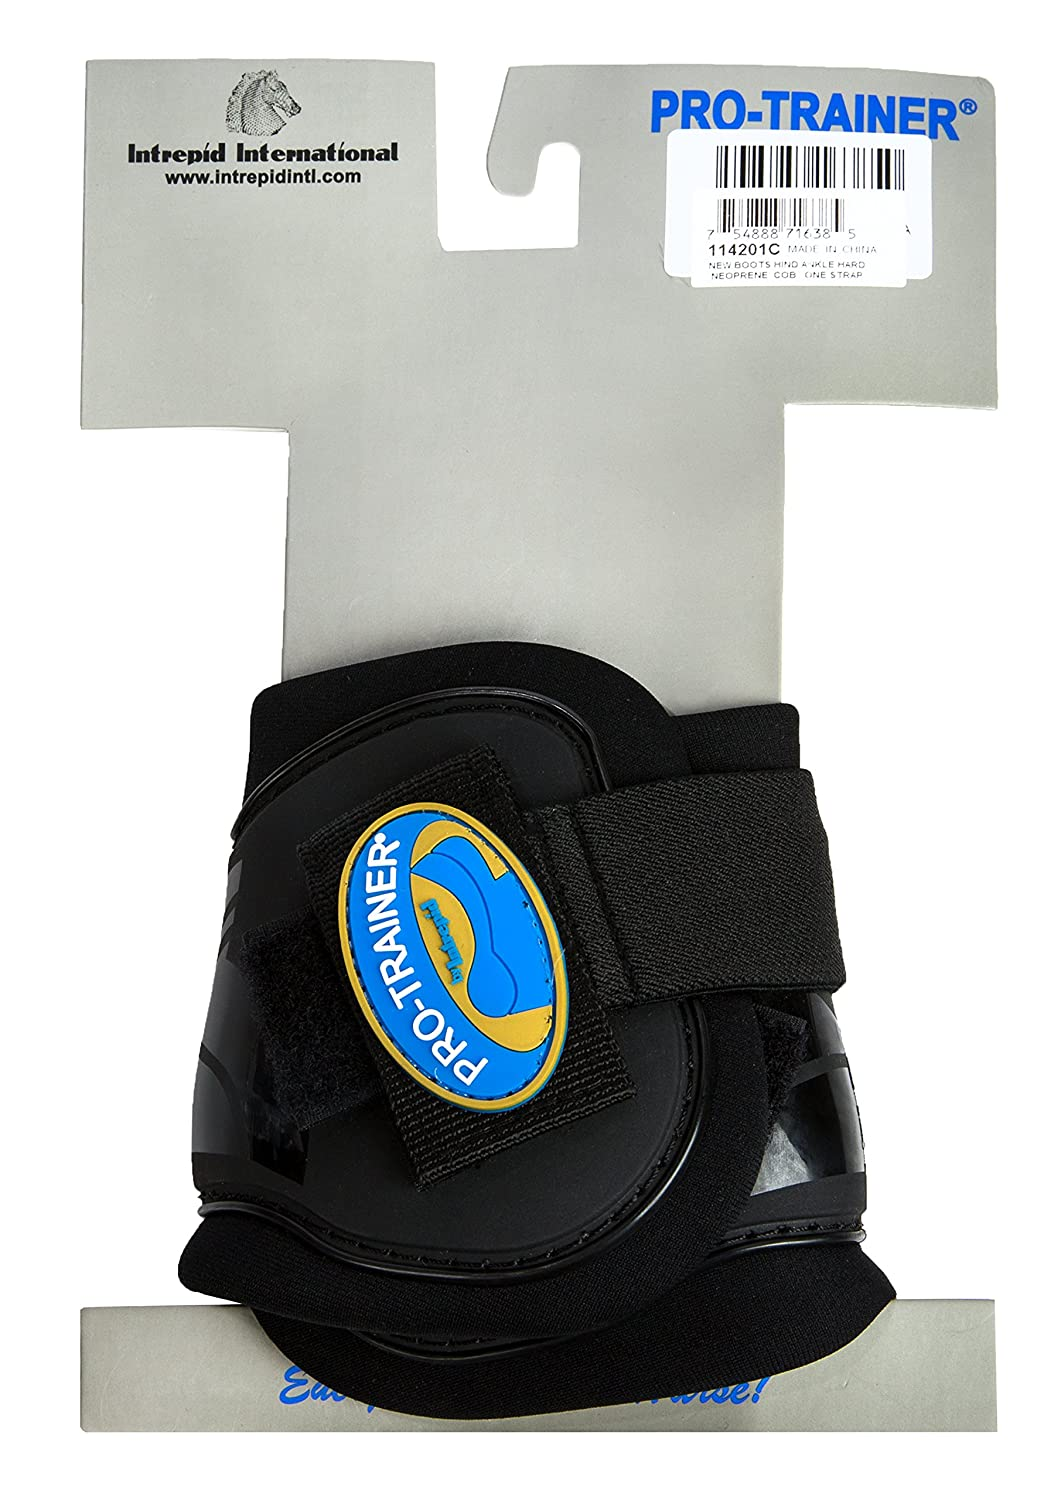 Intrepid International Pro-Trainer Hind Ankle Boots Cob